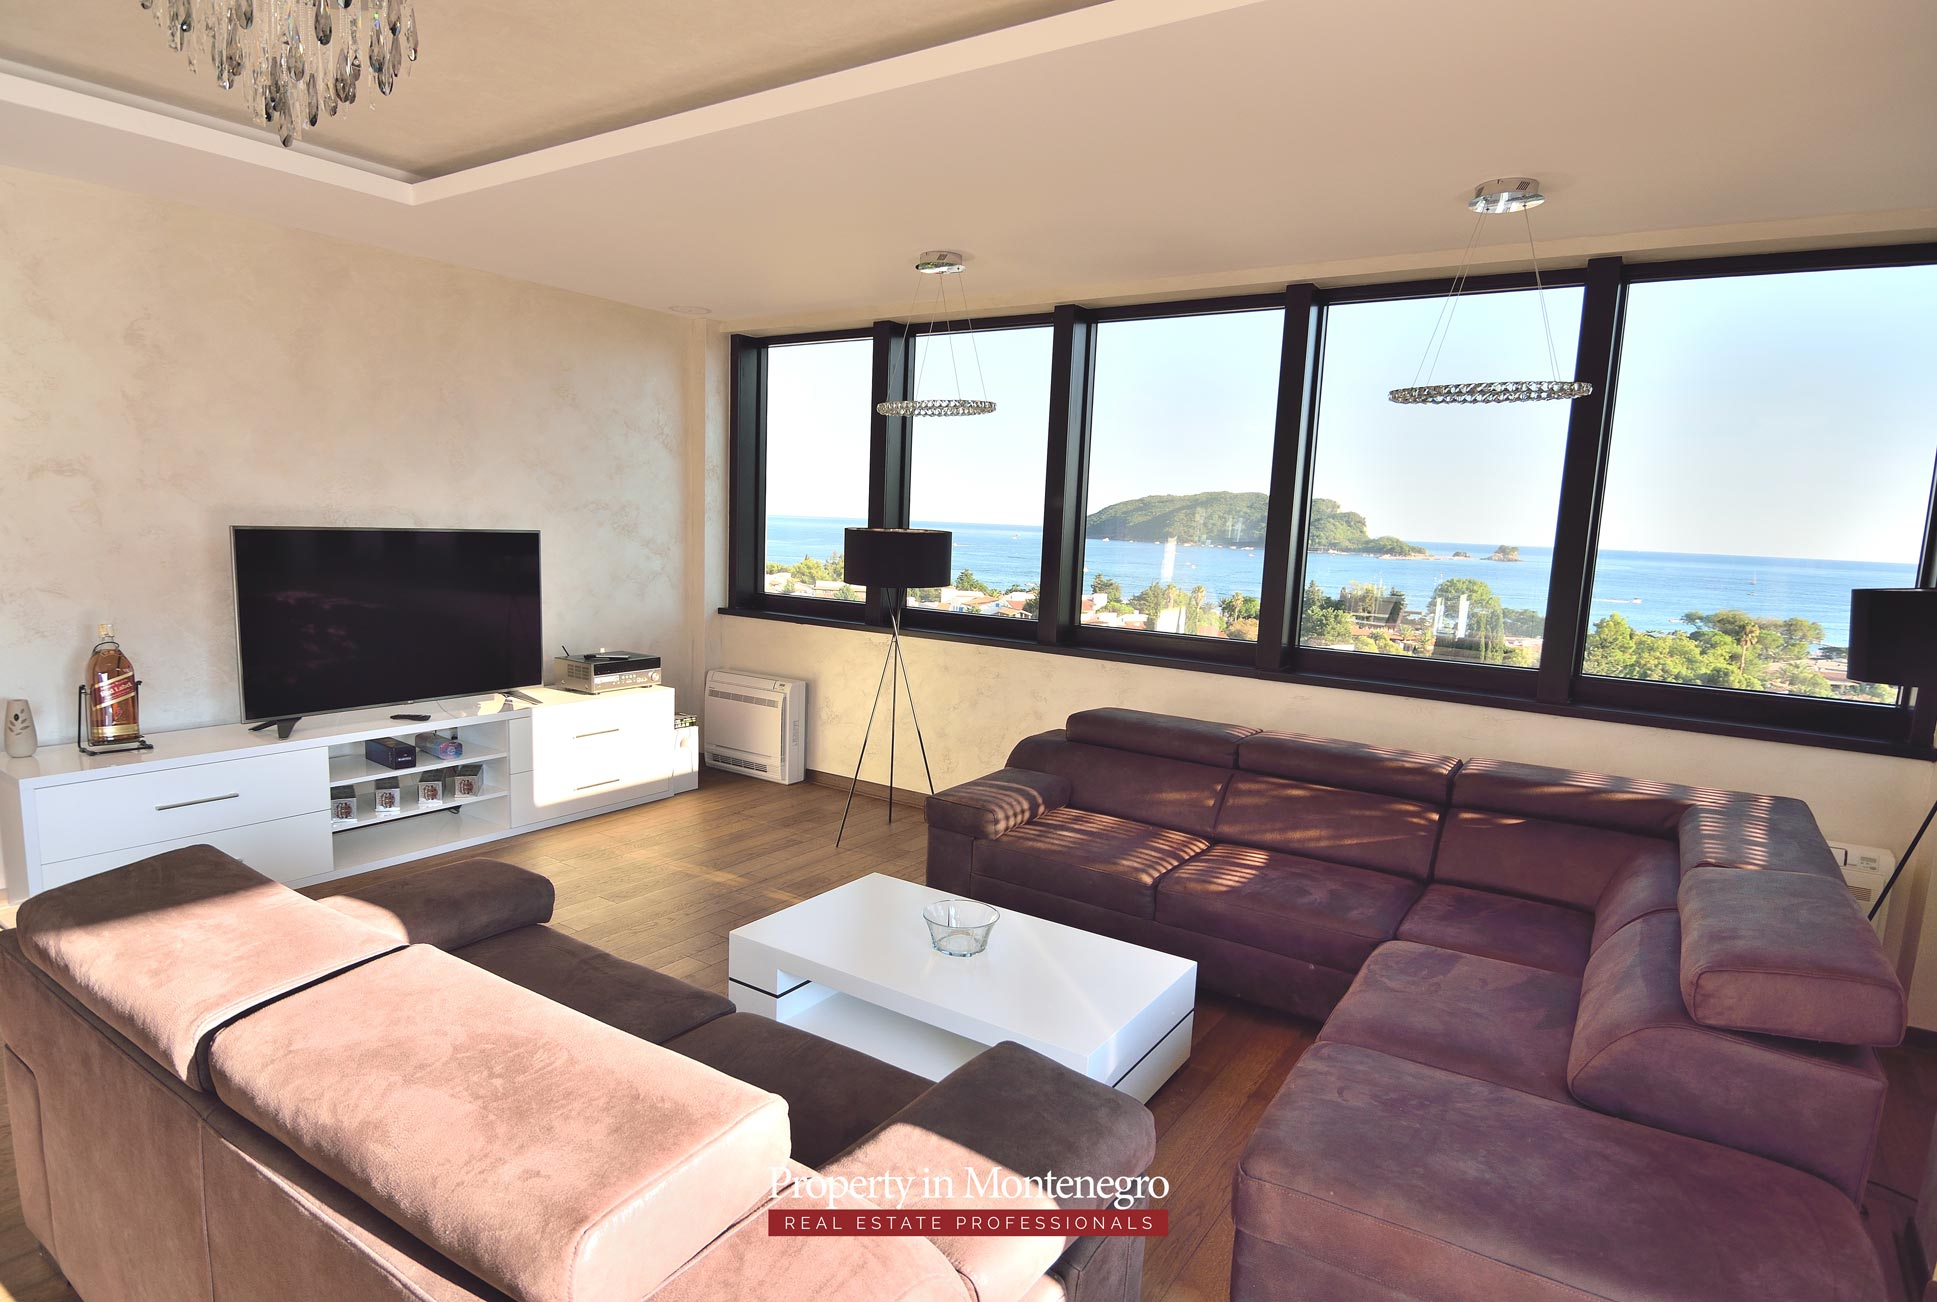 luxury-penthouse-with-panoramic-view-and-swimming-pool-for-sale-in-Budva-Montenegro (33).jpg